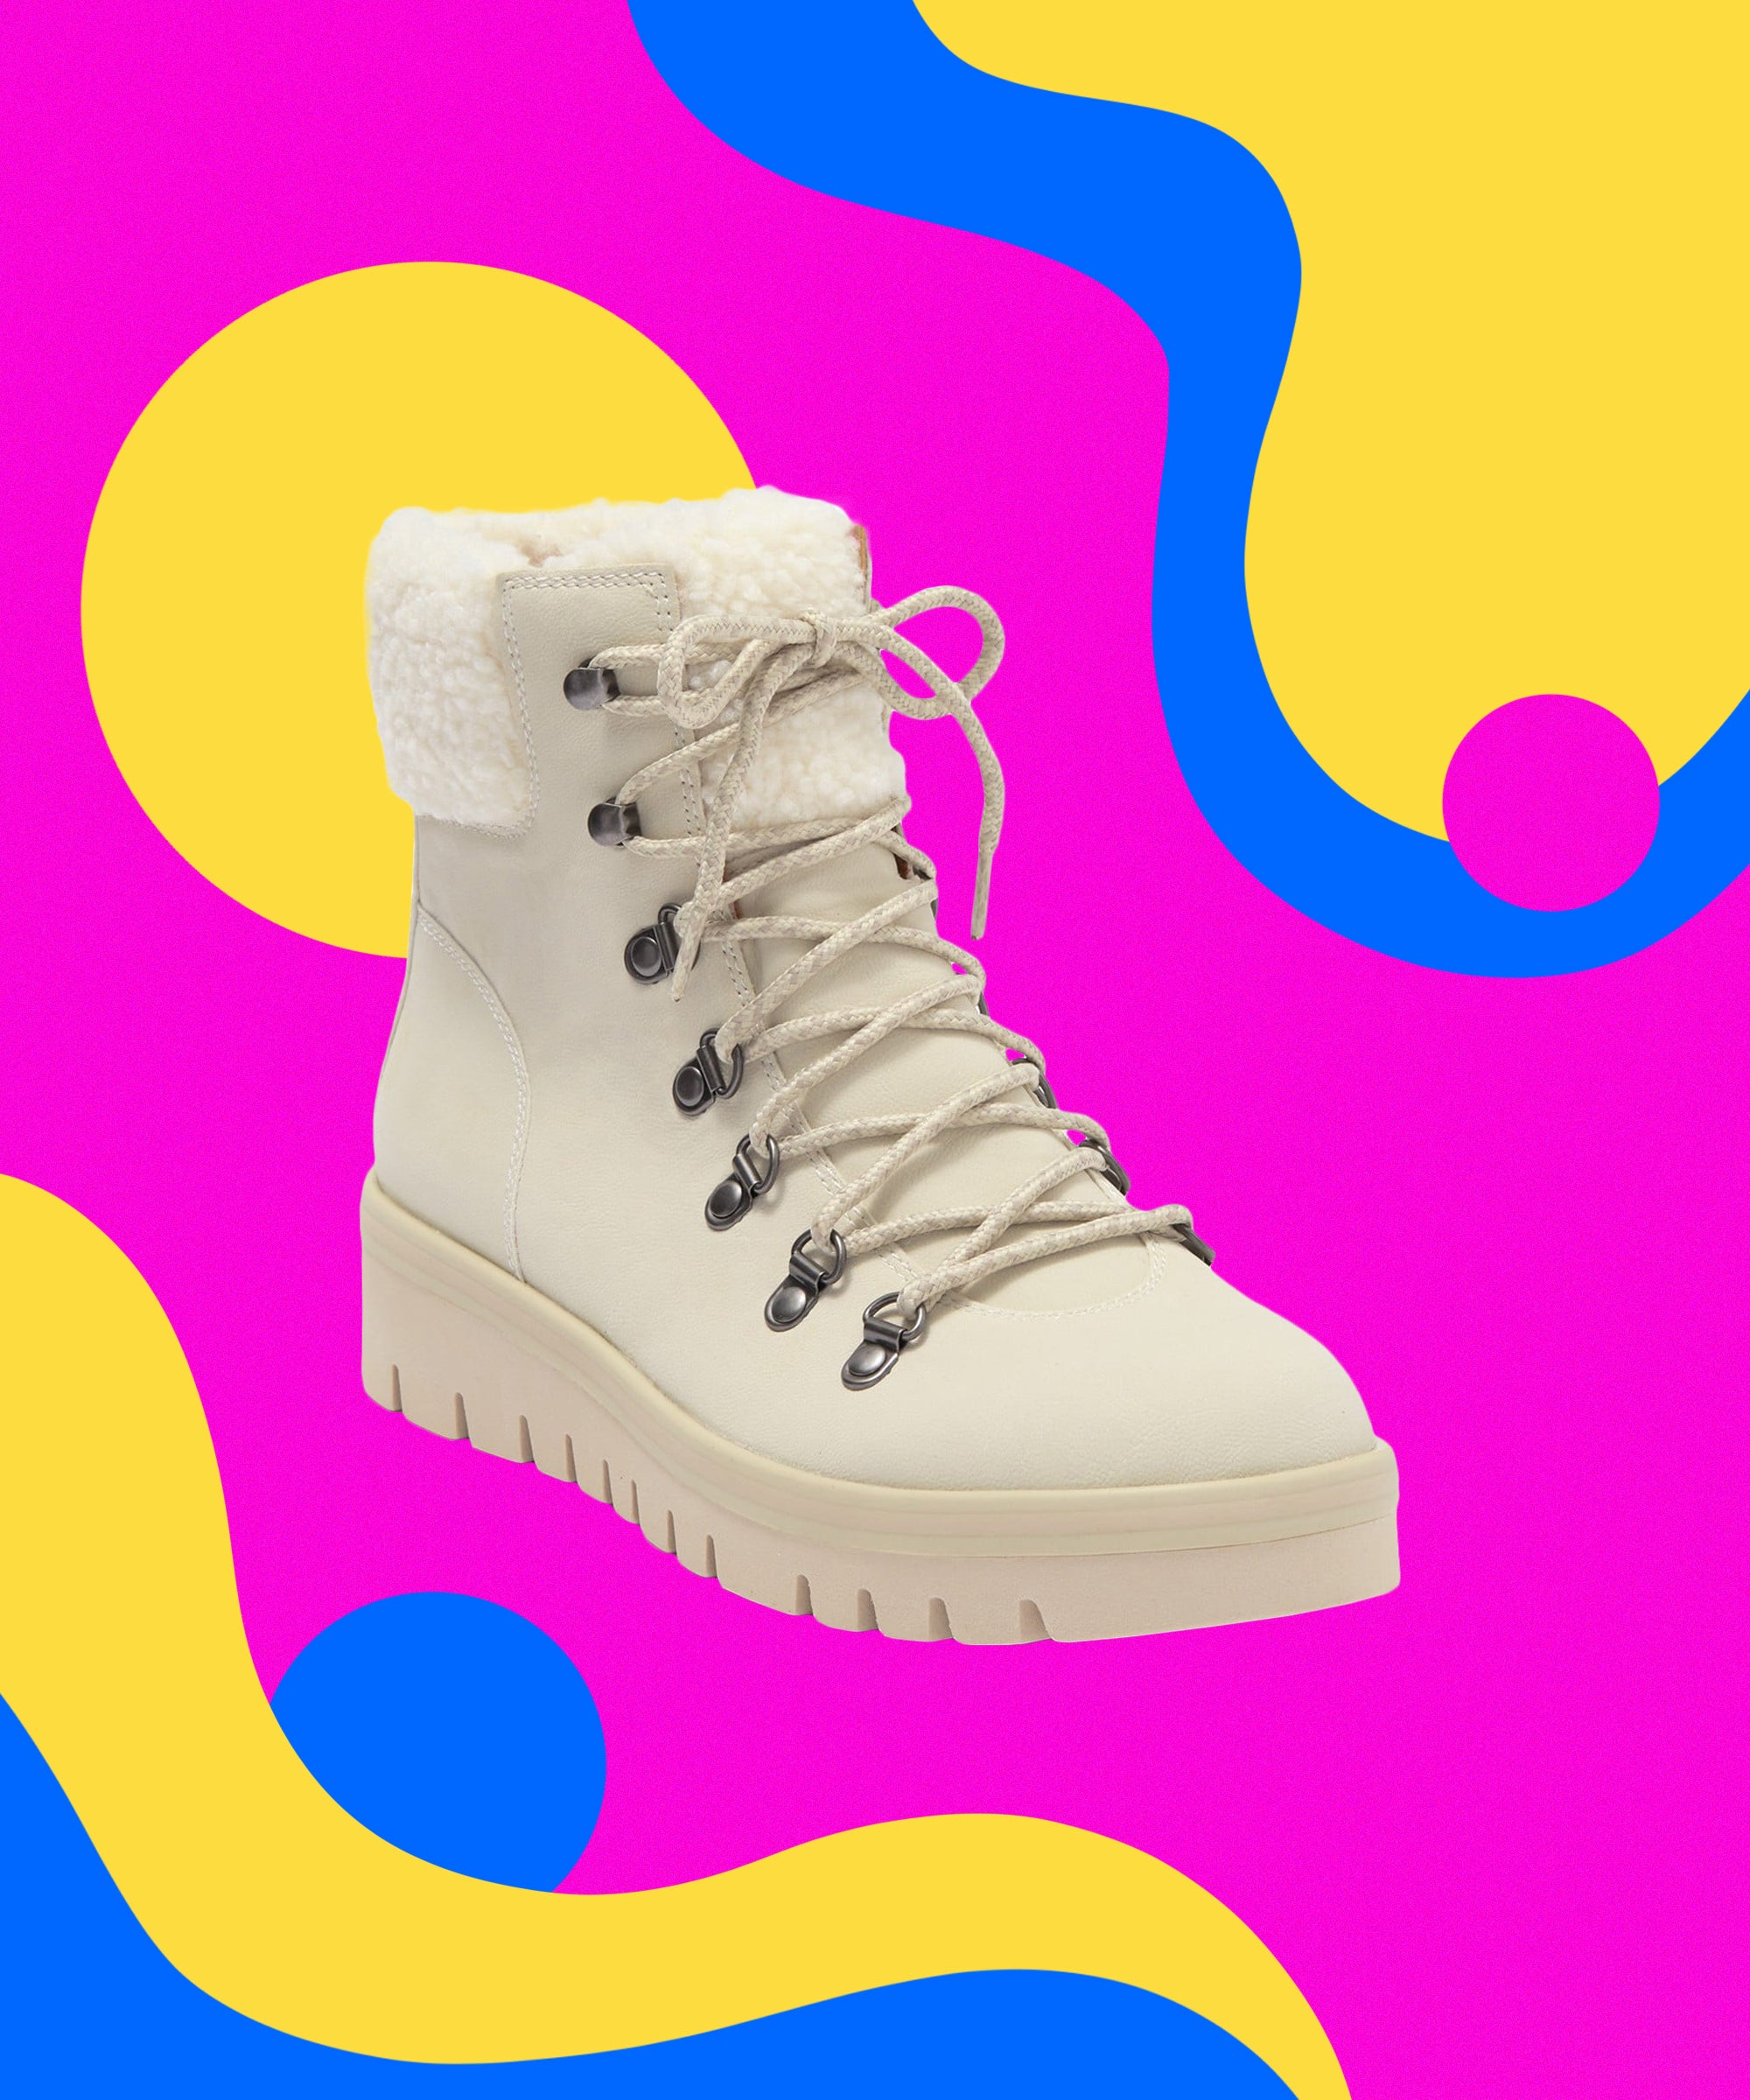 the best winter boots to gift this season